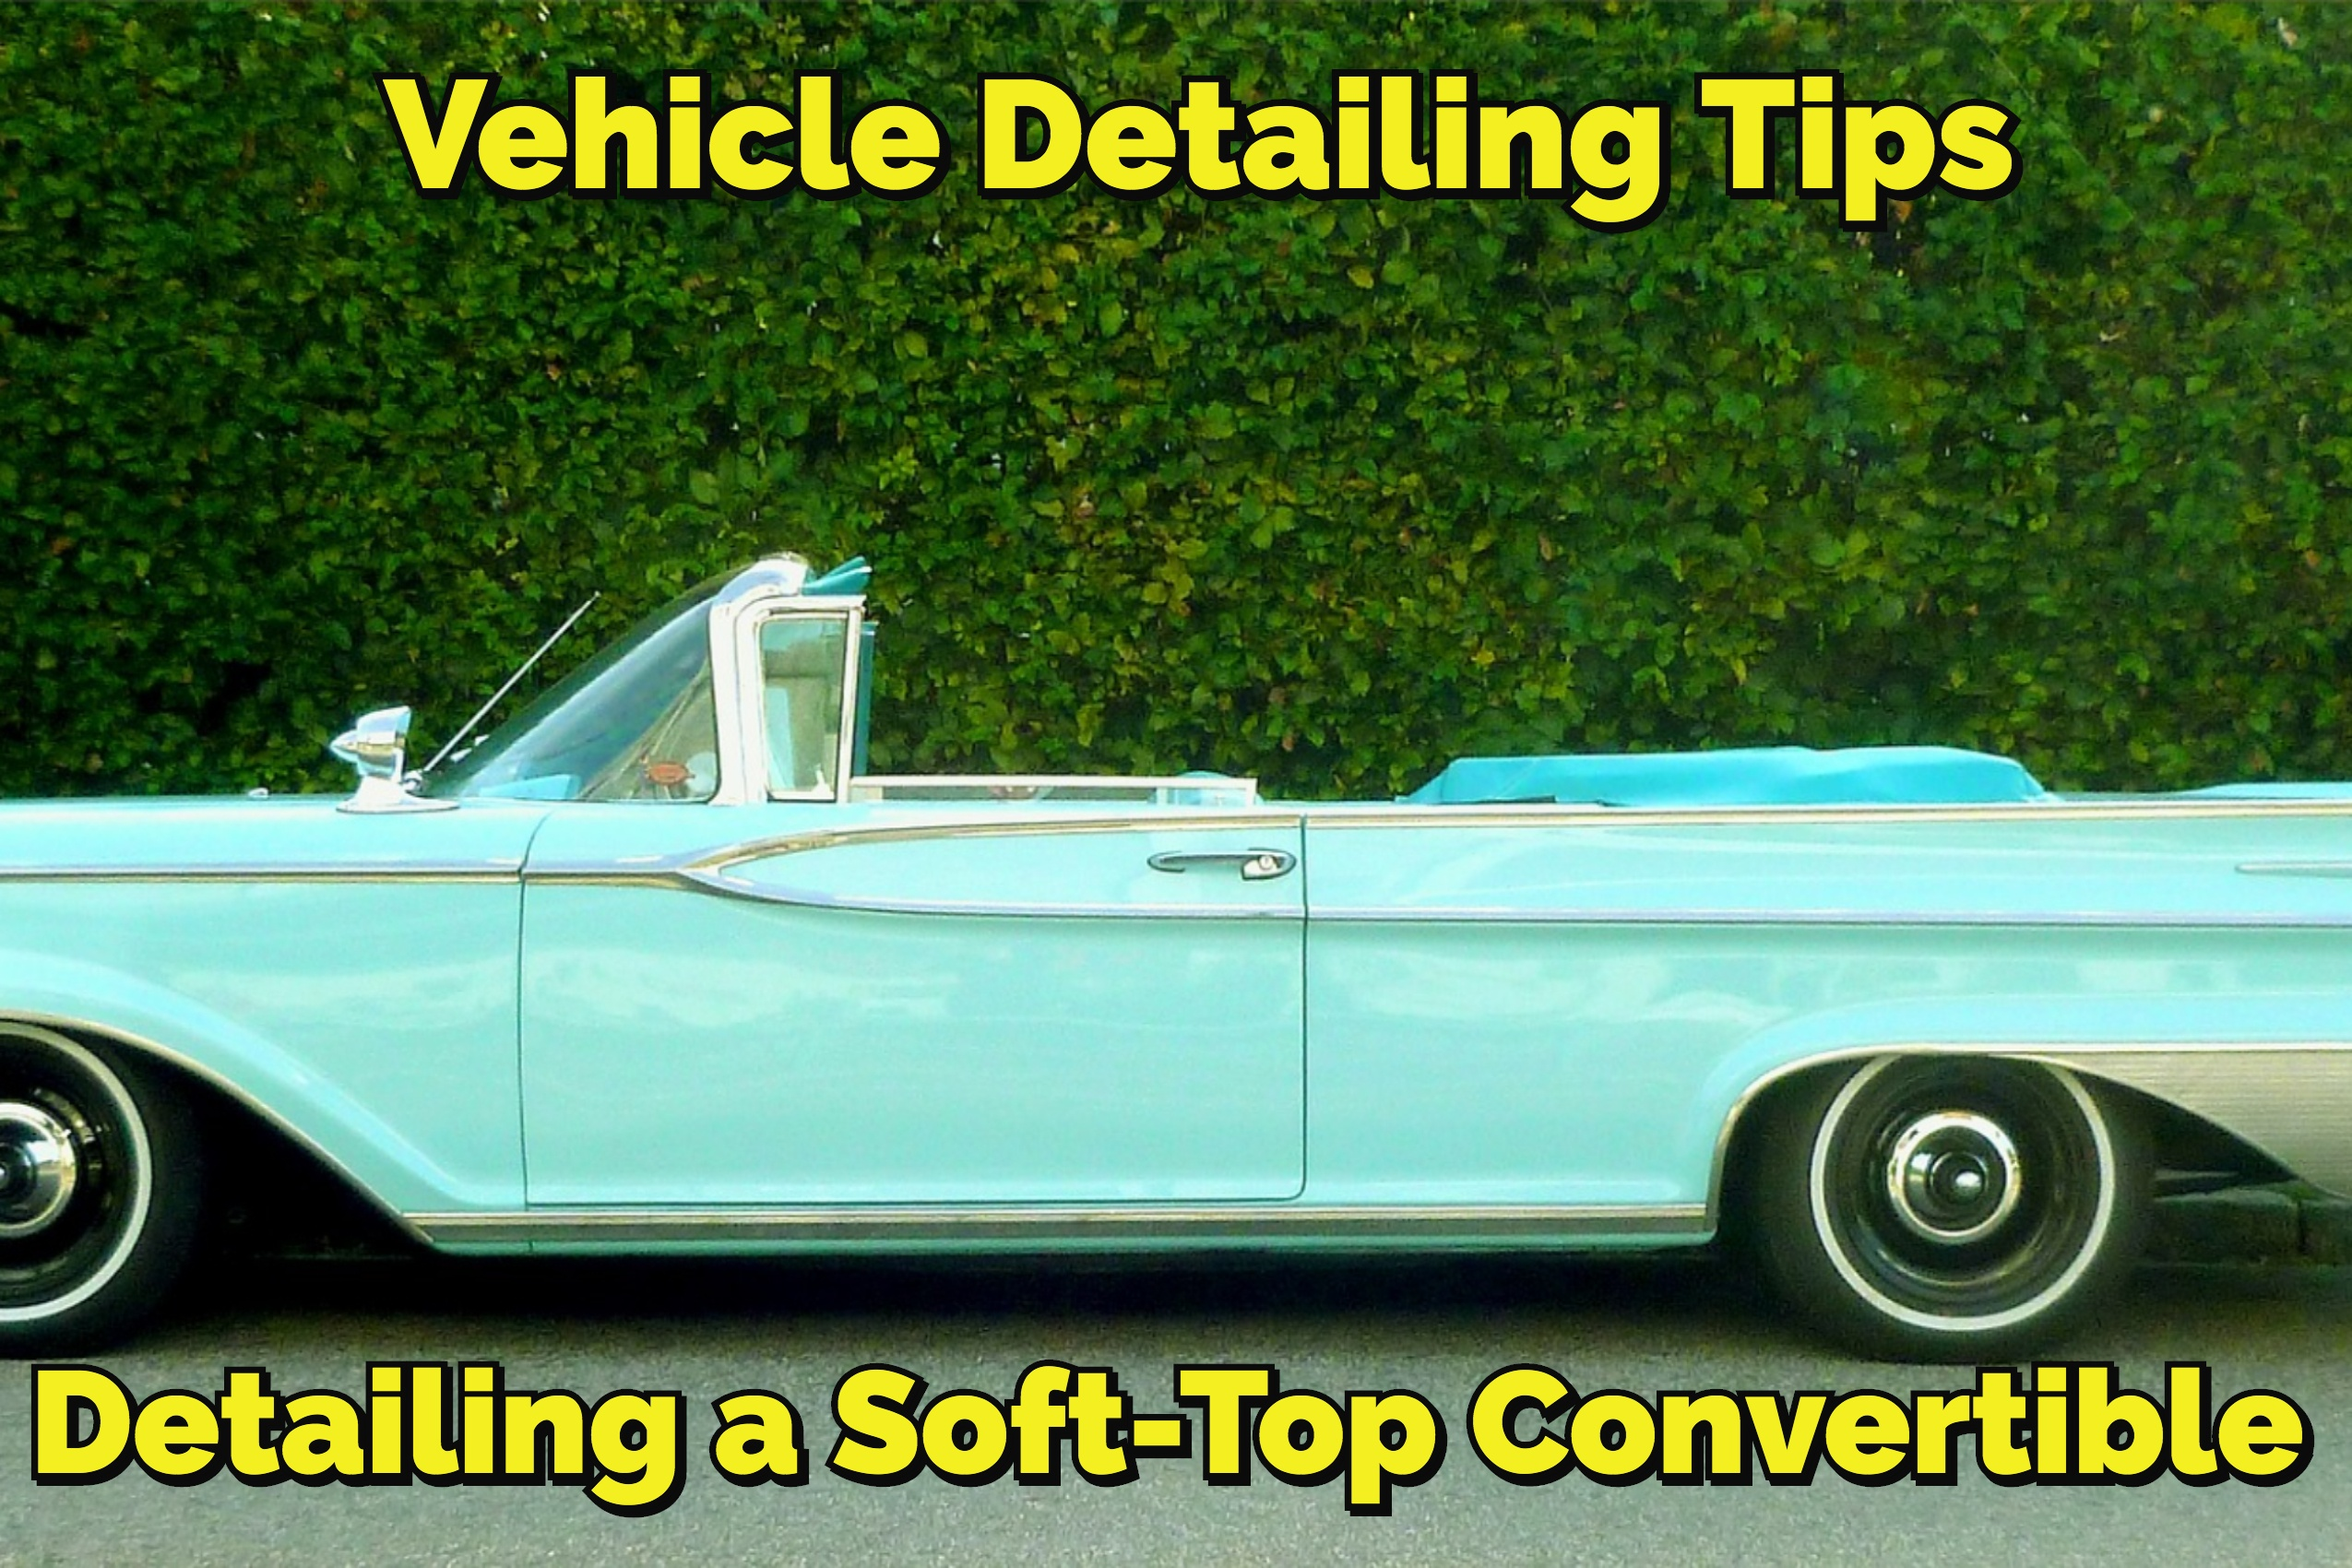 Vehicle Detailing Tips: Detailing the Soft Top of an Open-Air Vehicle